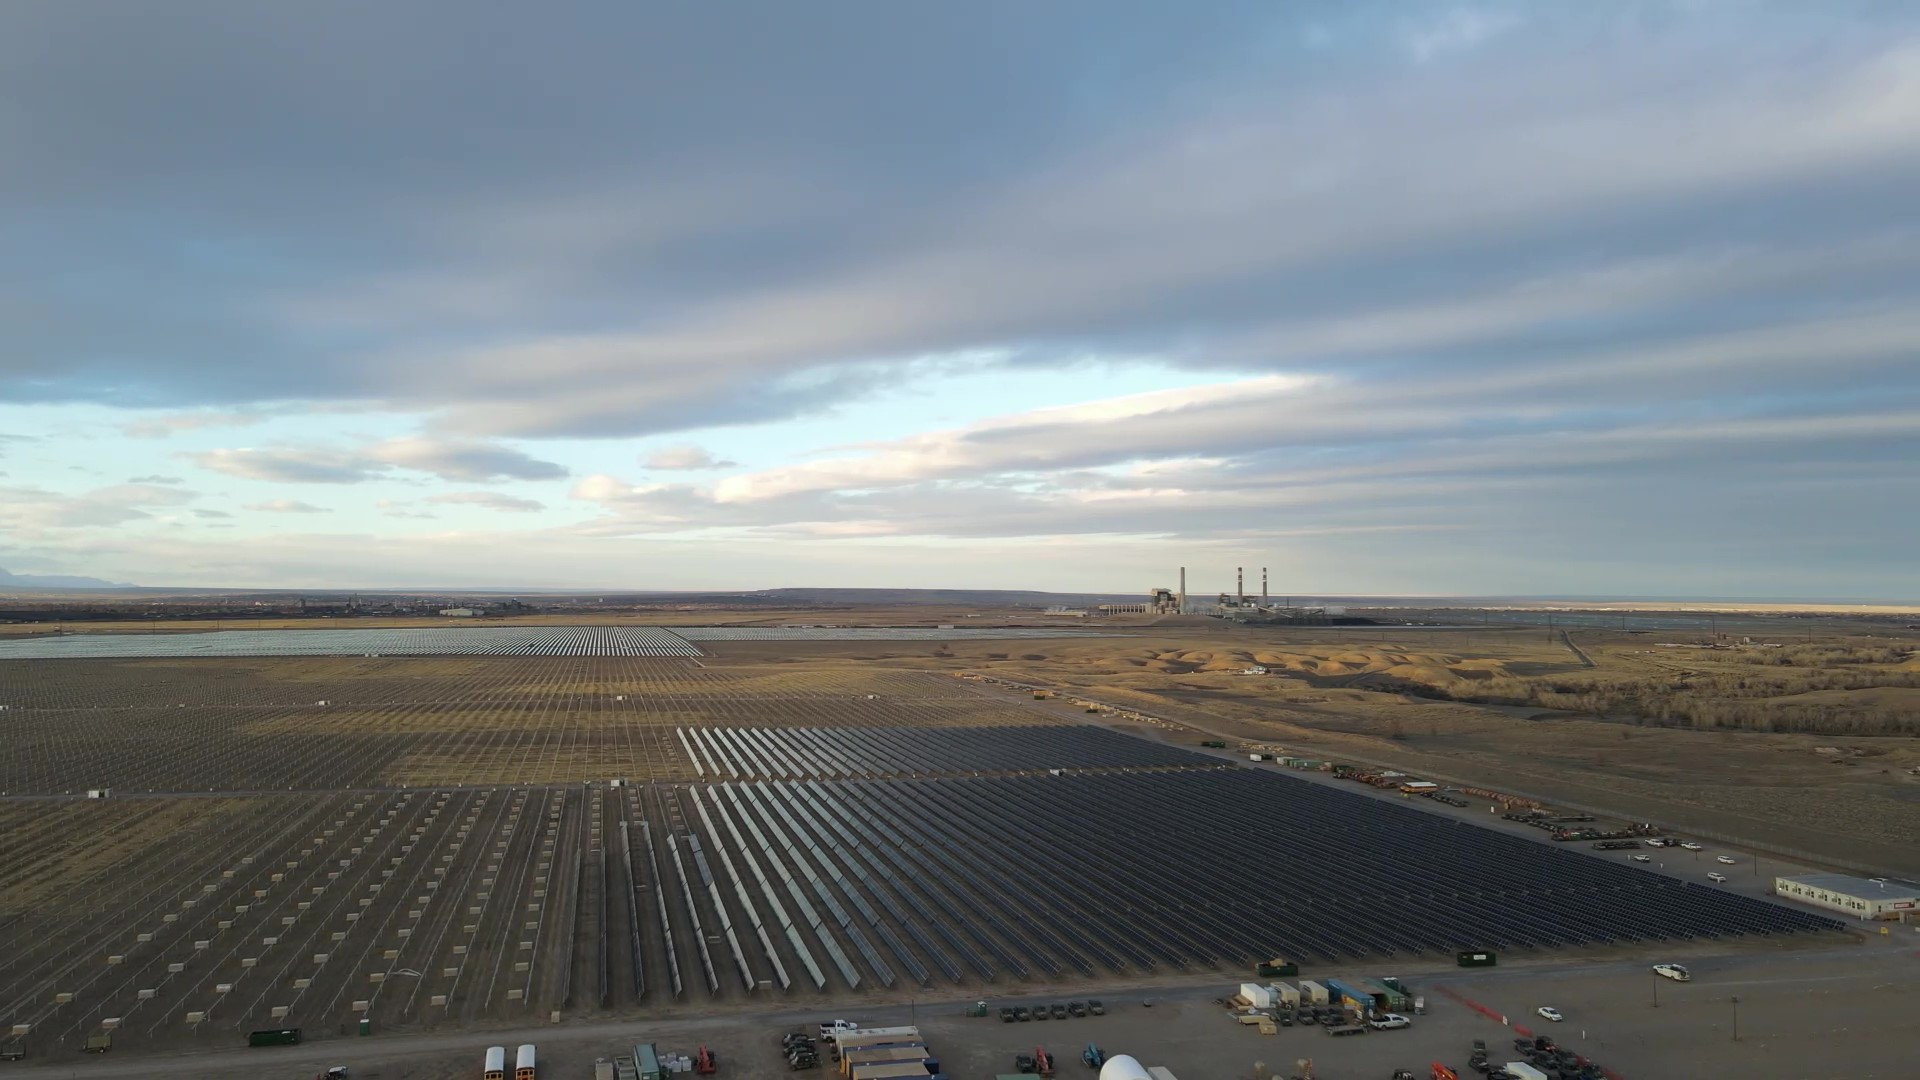 Bighorn-Solar-project-Pic-1